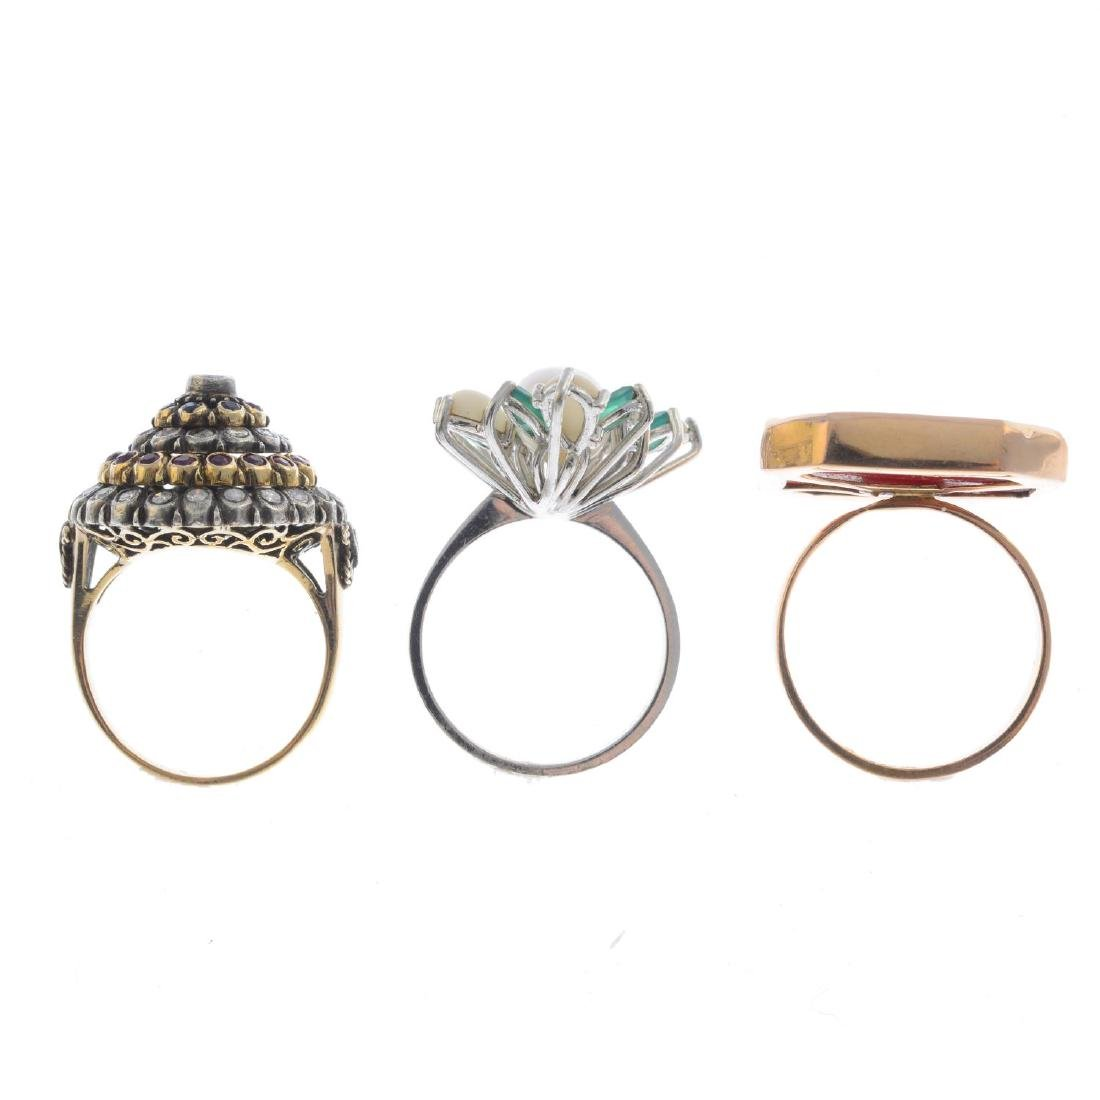 Three gem-set rings. To include a diamond, sapphire and - 2